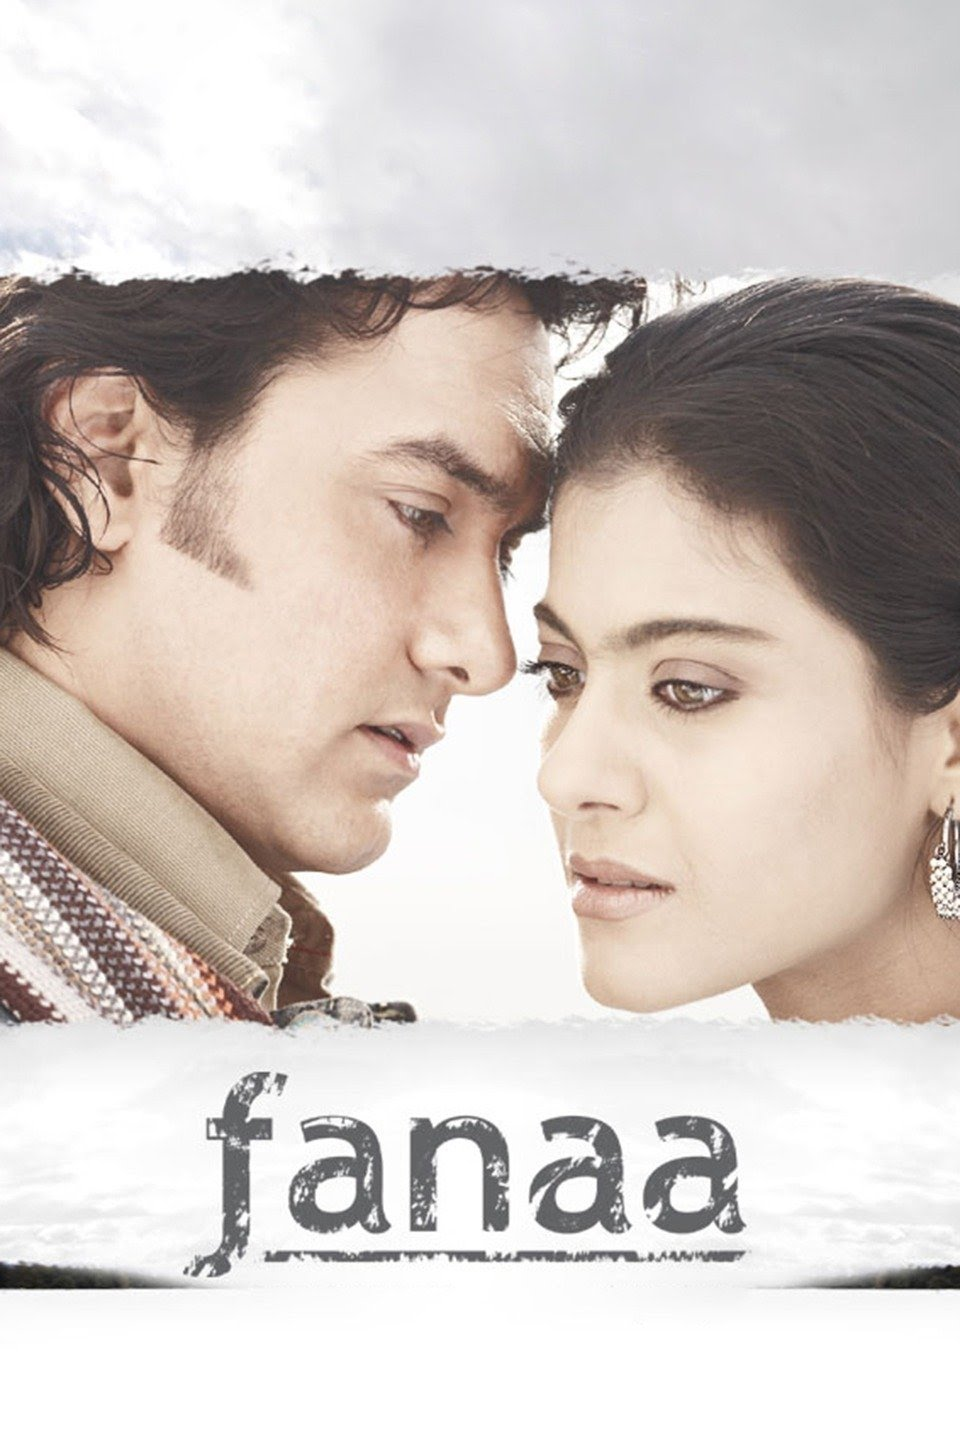 Download Fanaa (2006) Hindi Full Movie 480p [500MB] | 720p [1.4GB]